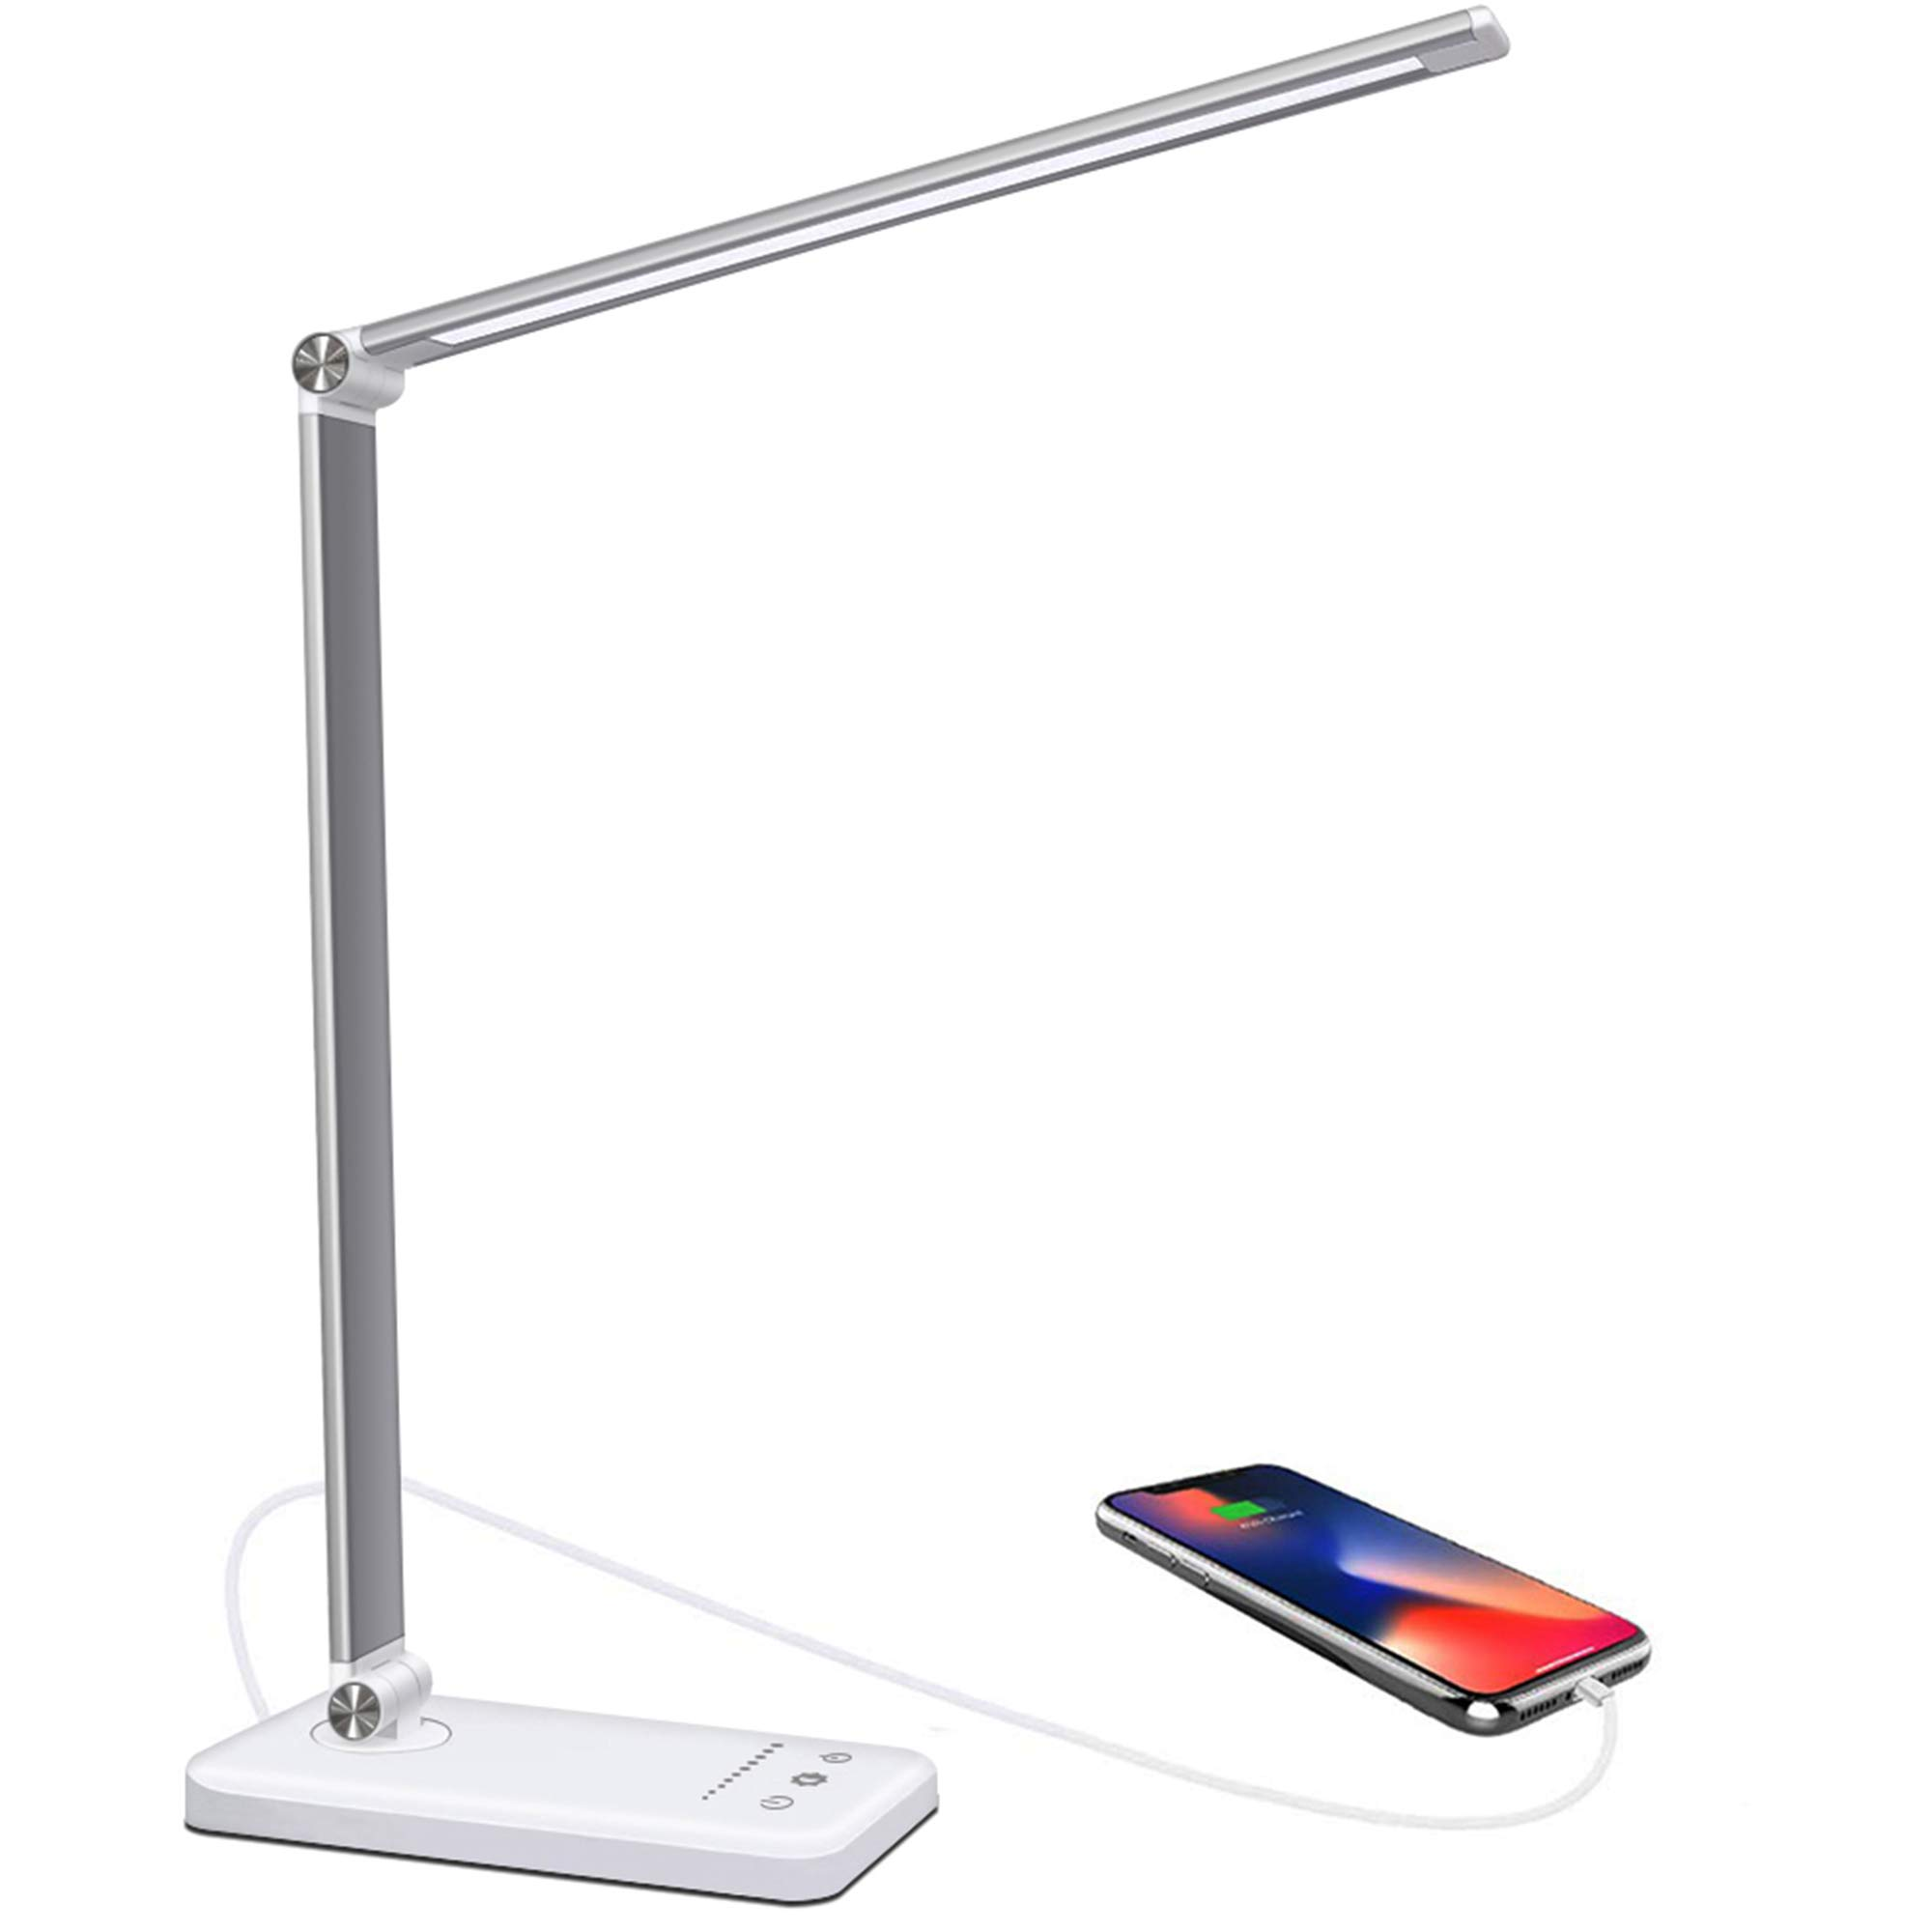 Led Desk Lamp 50 Brightness Mode Dimmable Led Table Lamp 52 Smd Eye Friendly Leds With Usb Power Cable Foldable Touch Control Bedside Lamp Ideal For Readers Children Office Non Rechargeable Buy Online In Antigua